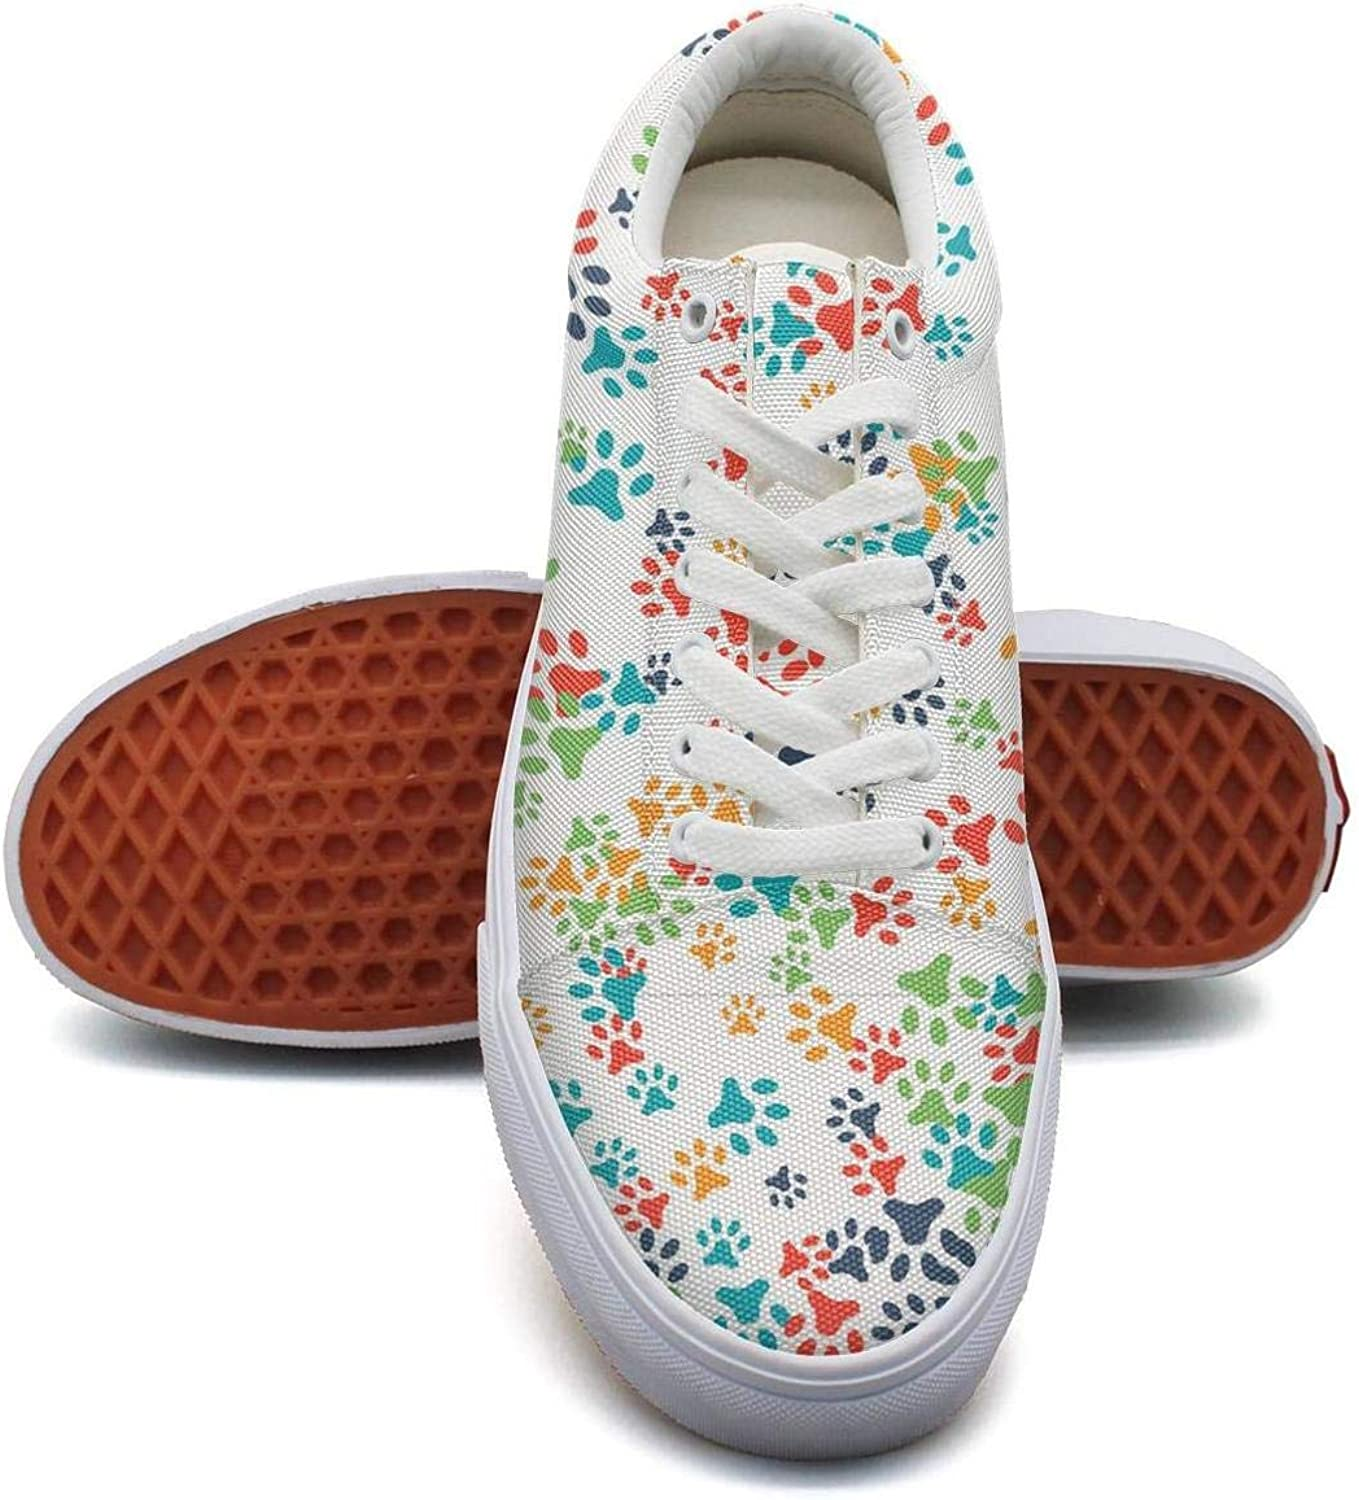 Wuixkas colorful Dog Puppy Footprints Womens Canvas Upper Sneakers Lace Up Jogger Fashion Loafer Canvas shoes